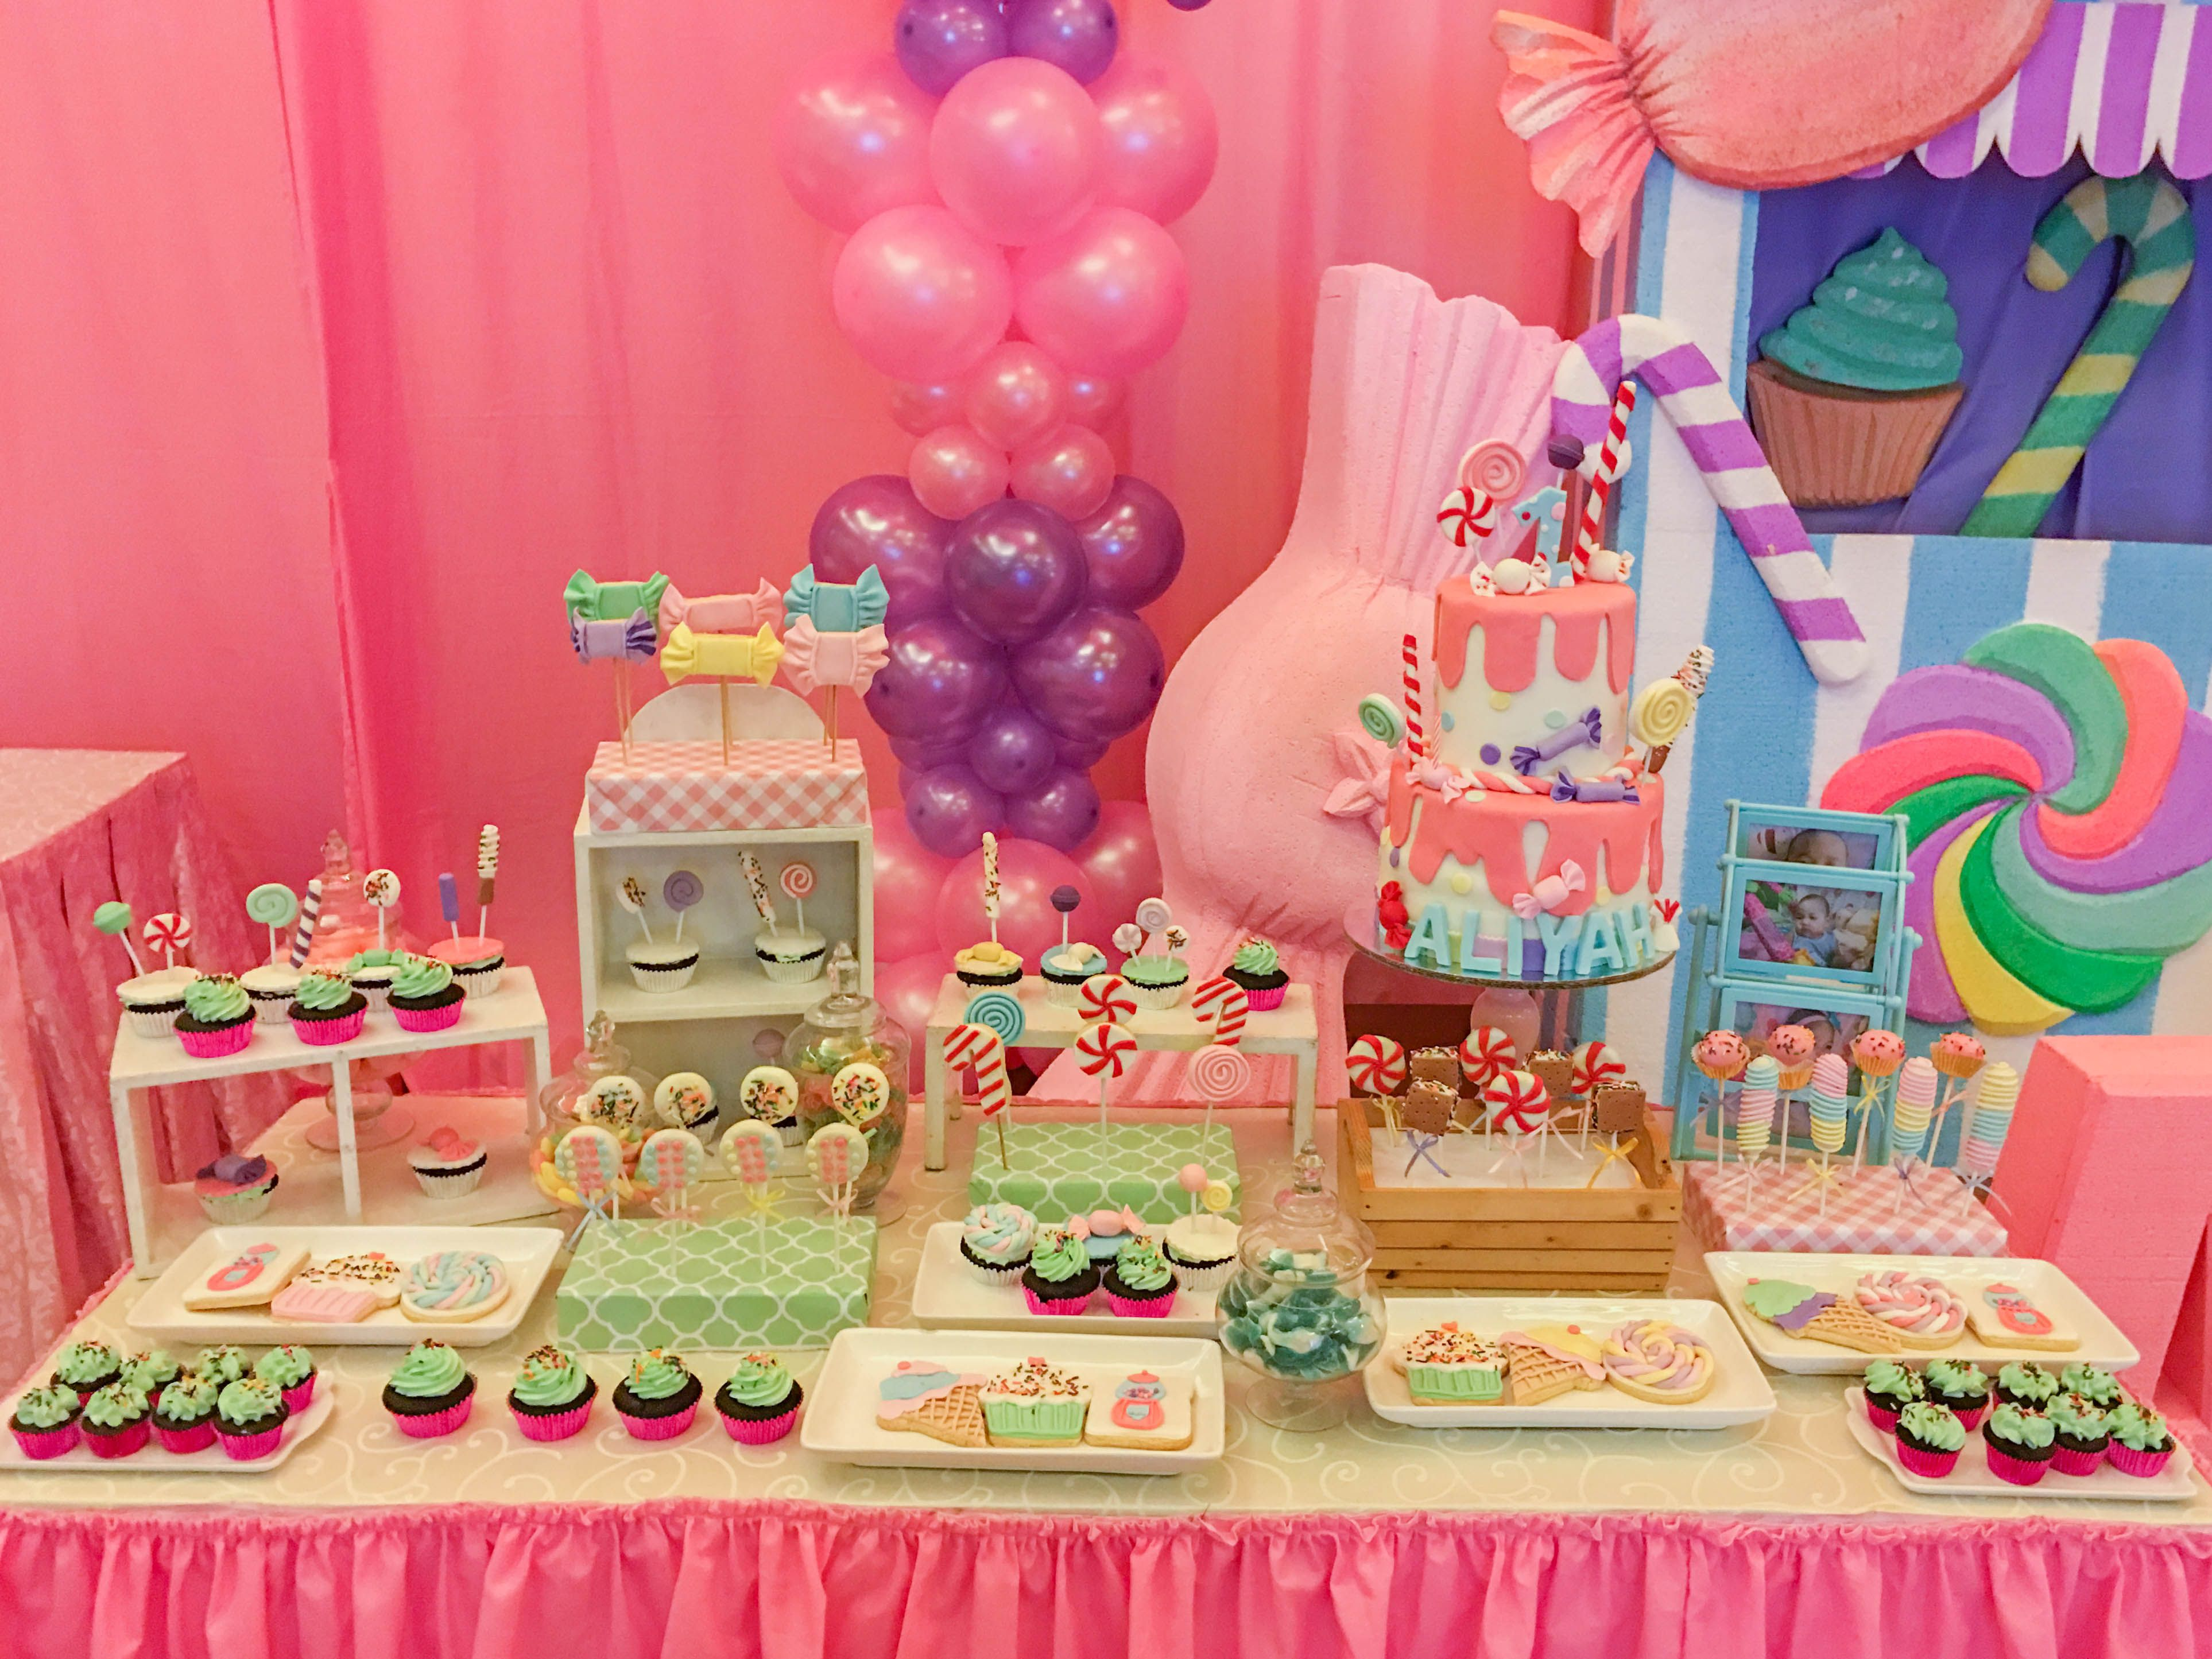 Candyland Theme Dessert Table Dessert Table Candy Land Theme